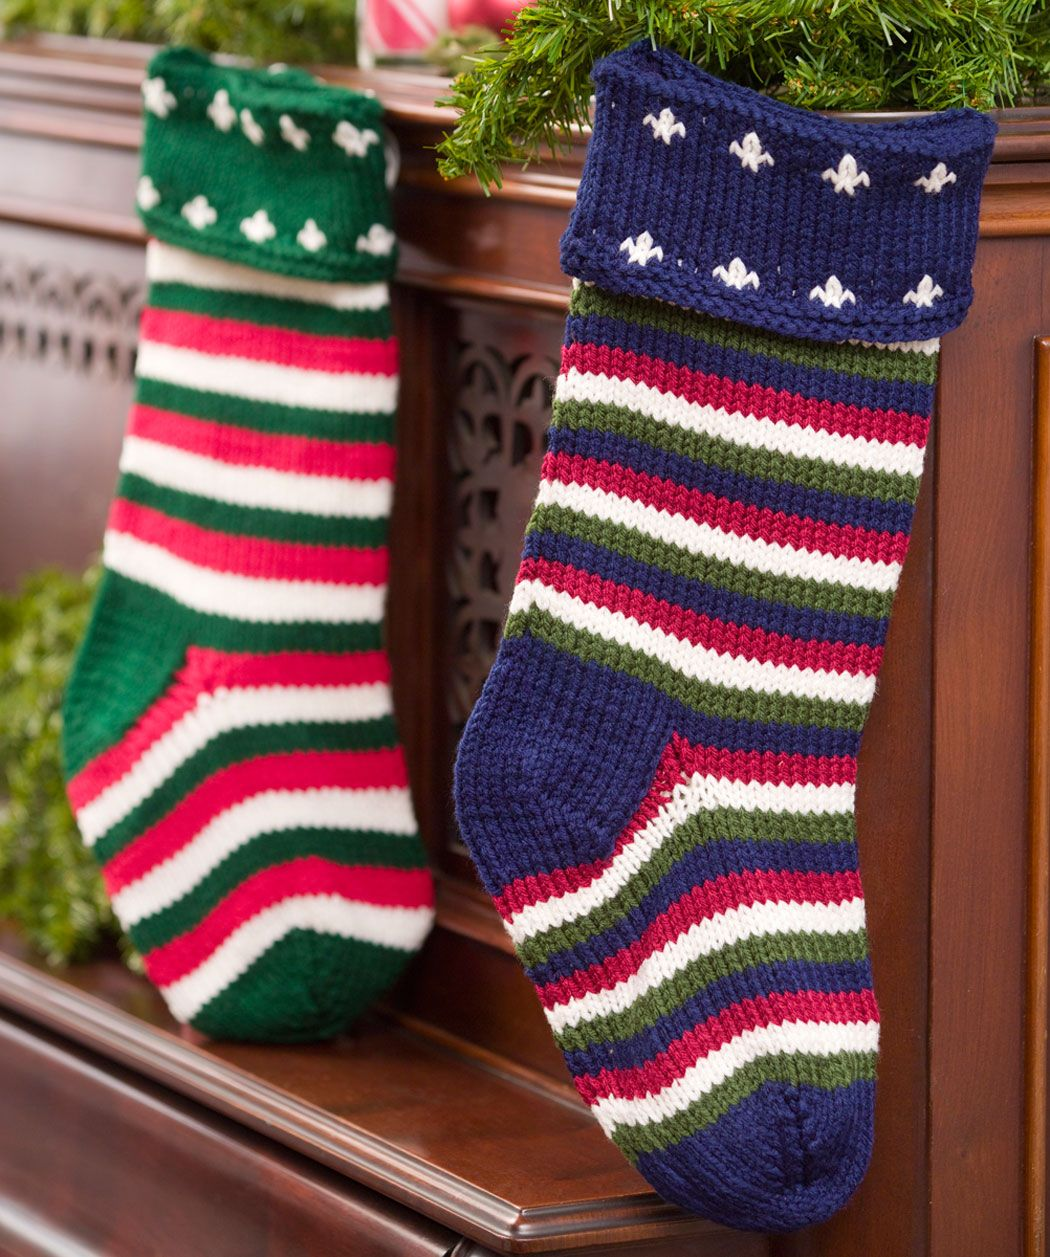 Christmas Stocking Crochet Pattern and Christmas Stocking Knitting ...